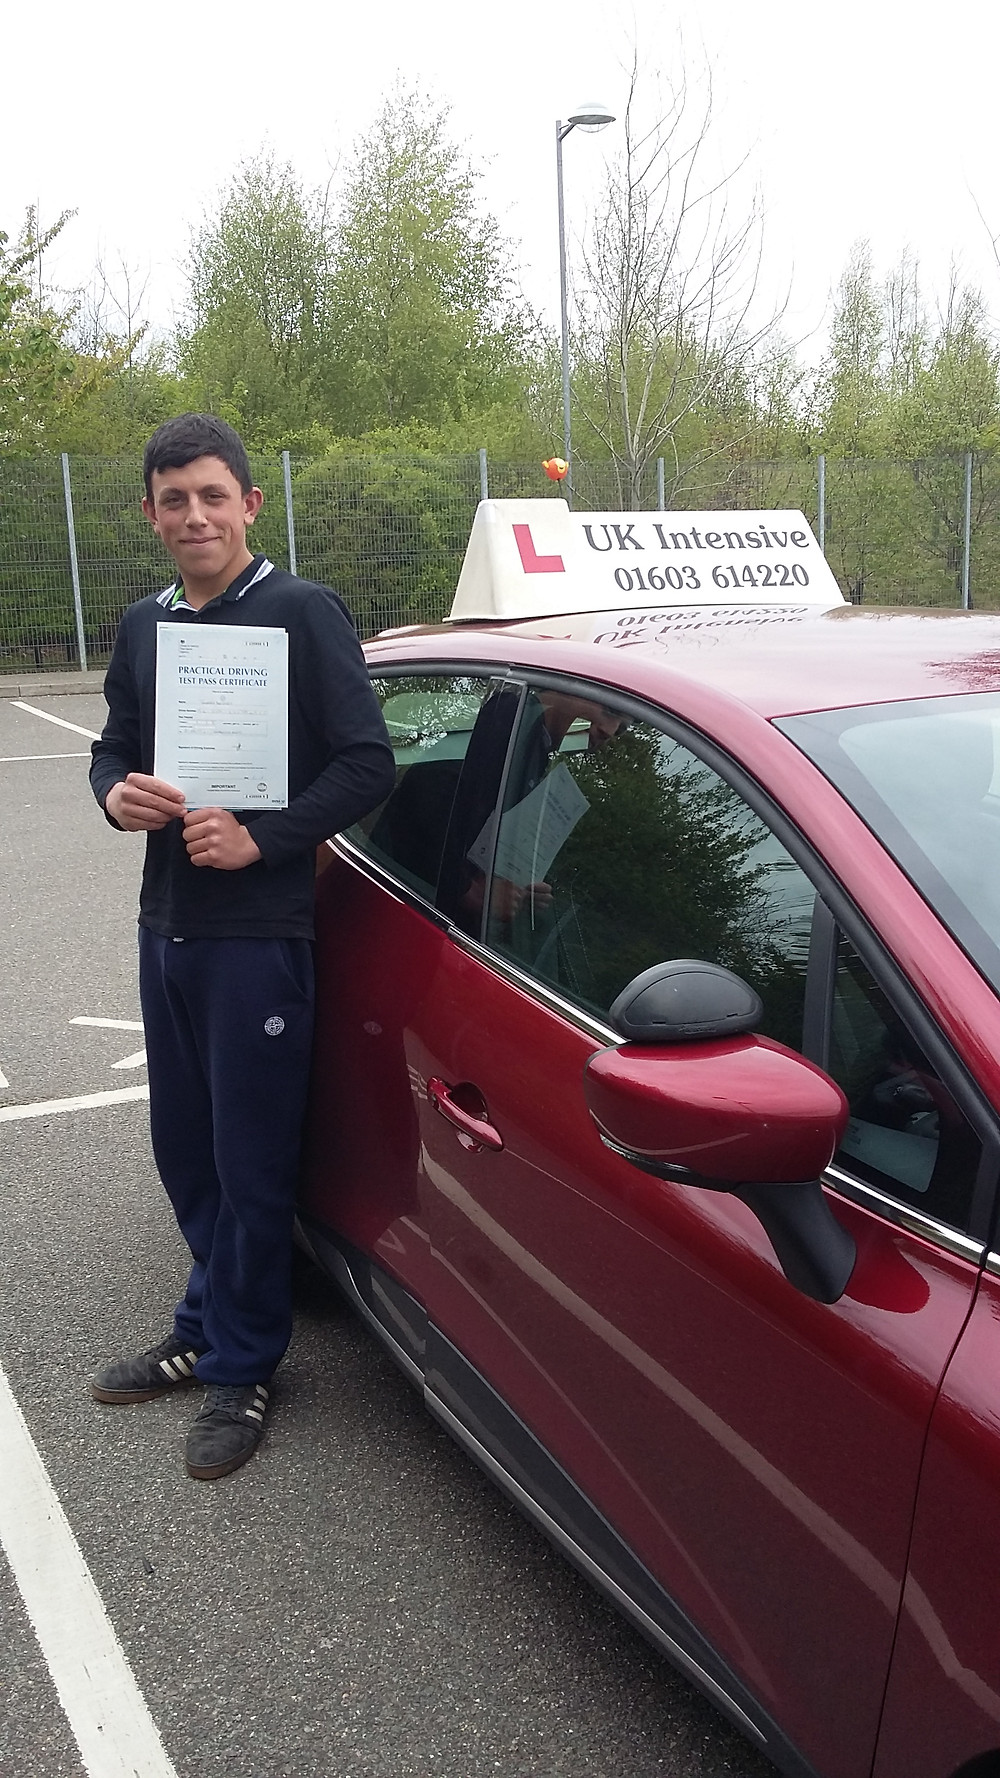 passed with us on our intensive driving course. #intensivedrivingcourses #drivingschool #drivinglessons #norwich #learntodrive #ukintensive #pass #driving #tuition